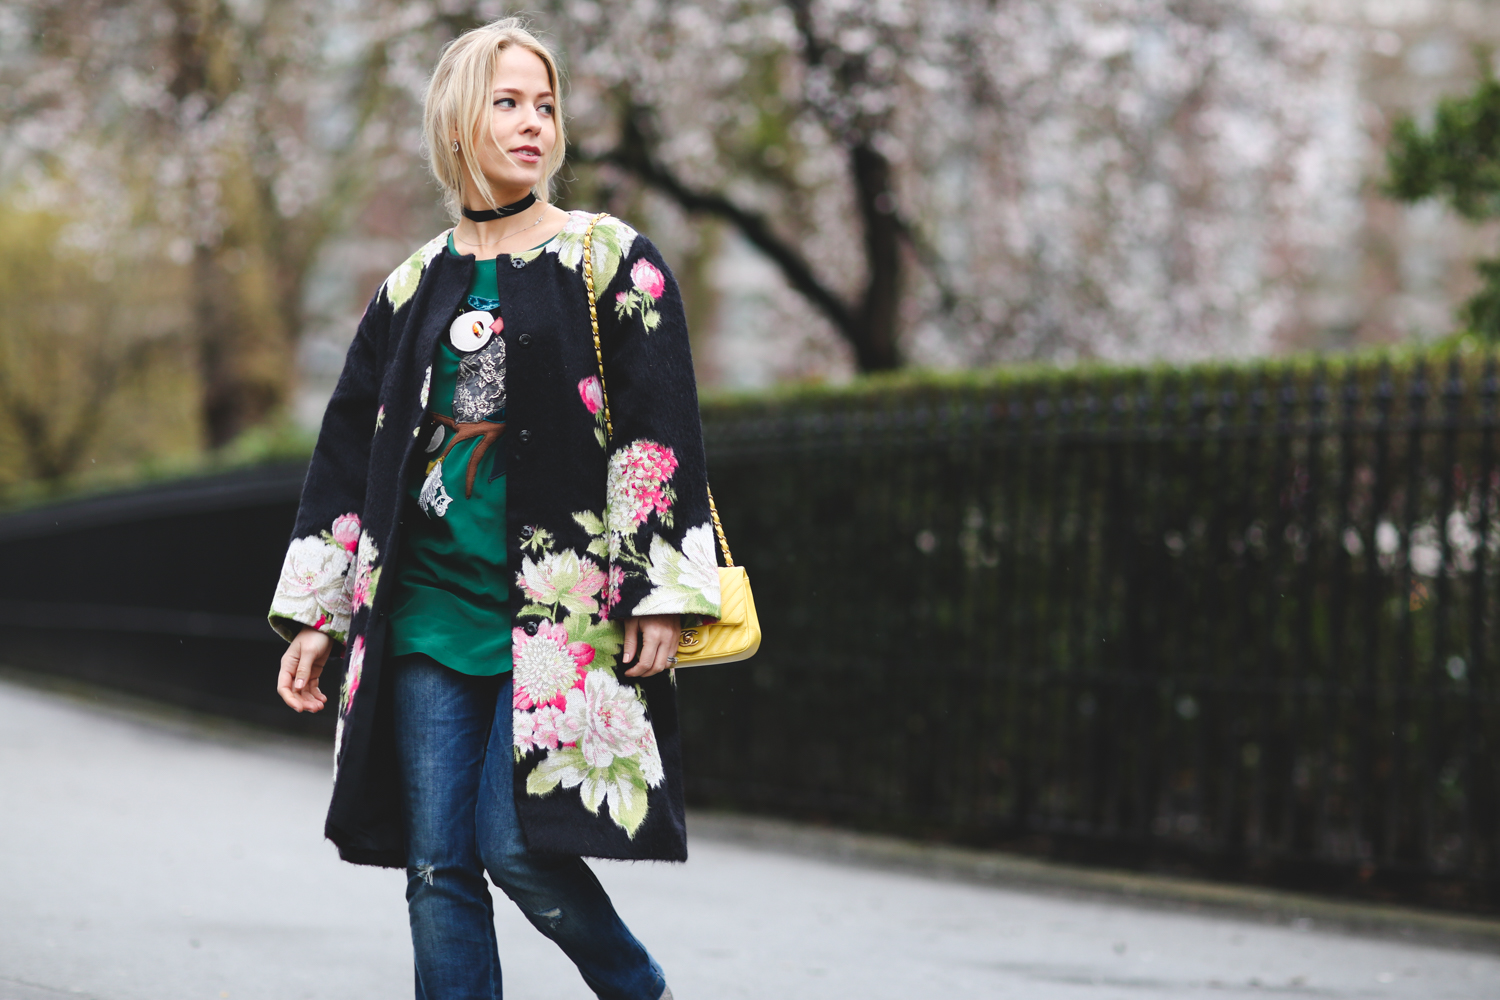 london-fashion-week-day-4-floral-coat-dolce-gabbana-chanel-bag-street-style-blogger-uk-sweatshirts-and-dresses-1